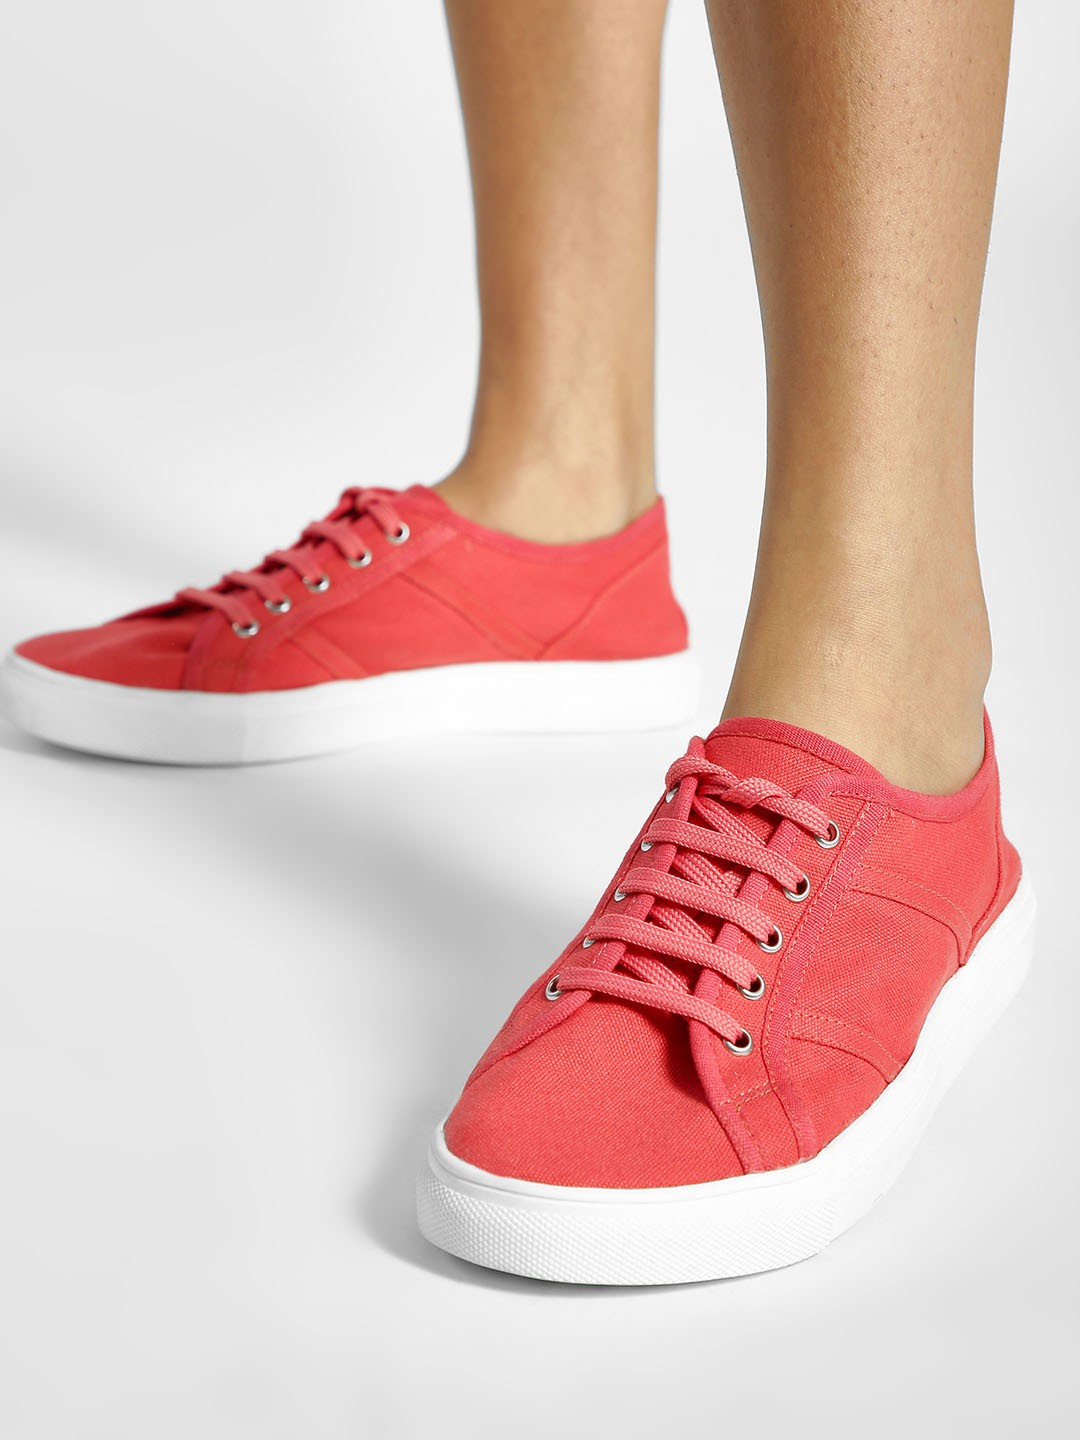 ADORLY Orange Canvas Panelled Sneakers 1